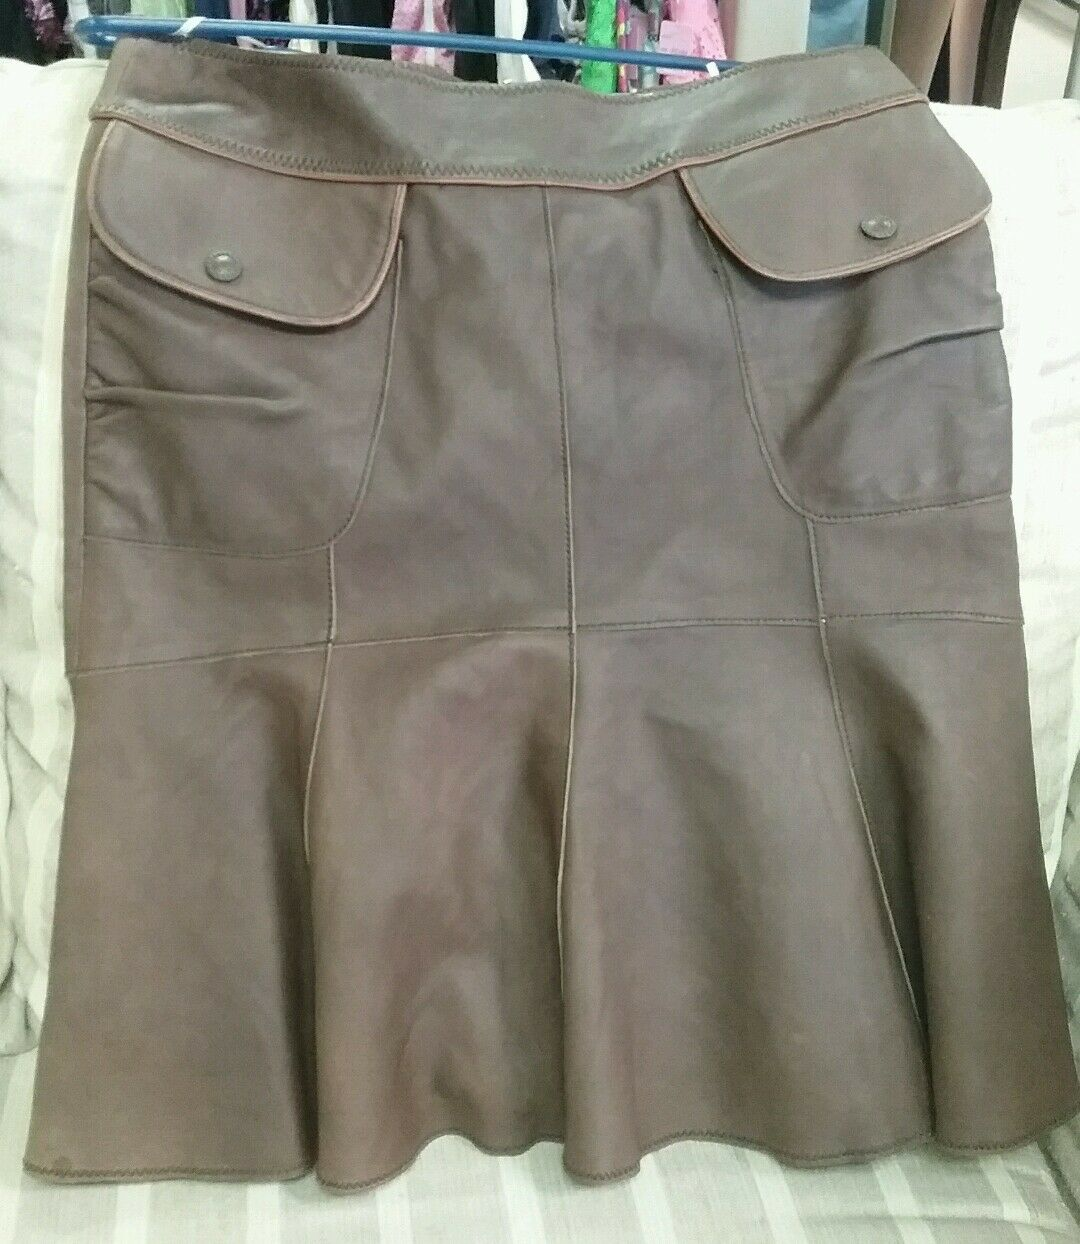 Anthropologie Leather Skirt. Chocolate Brown. New with tags.